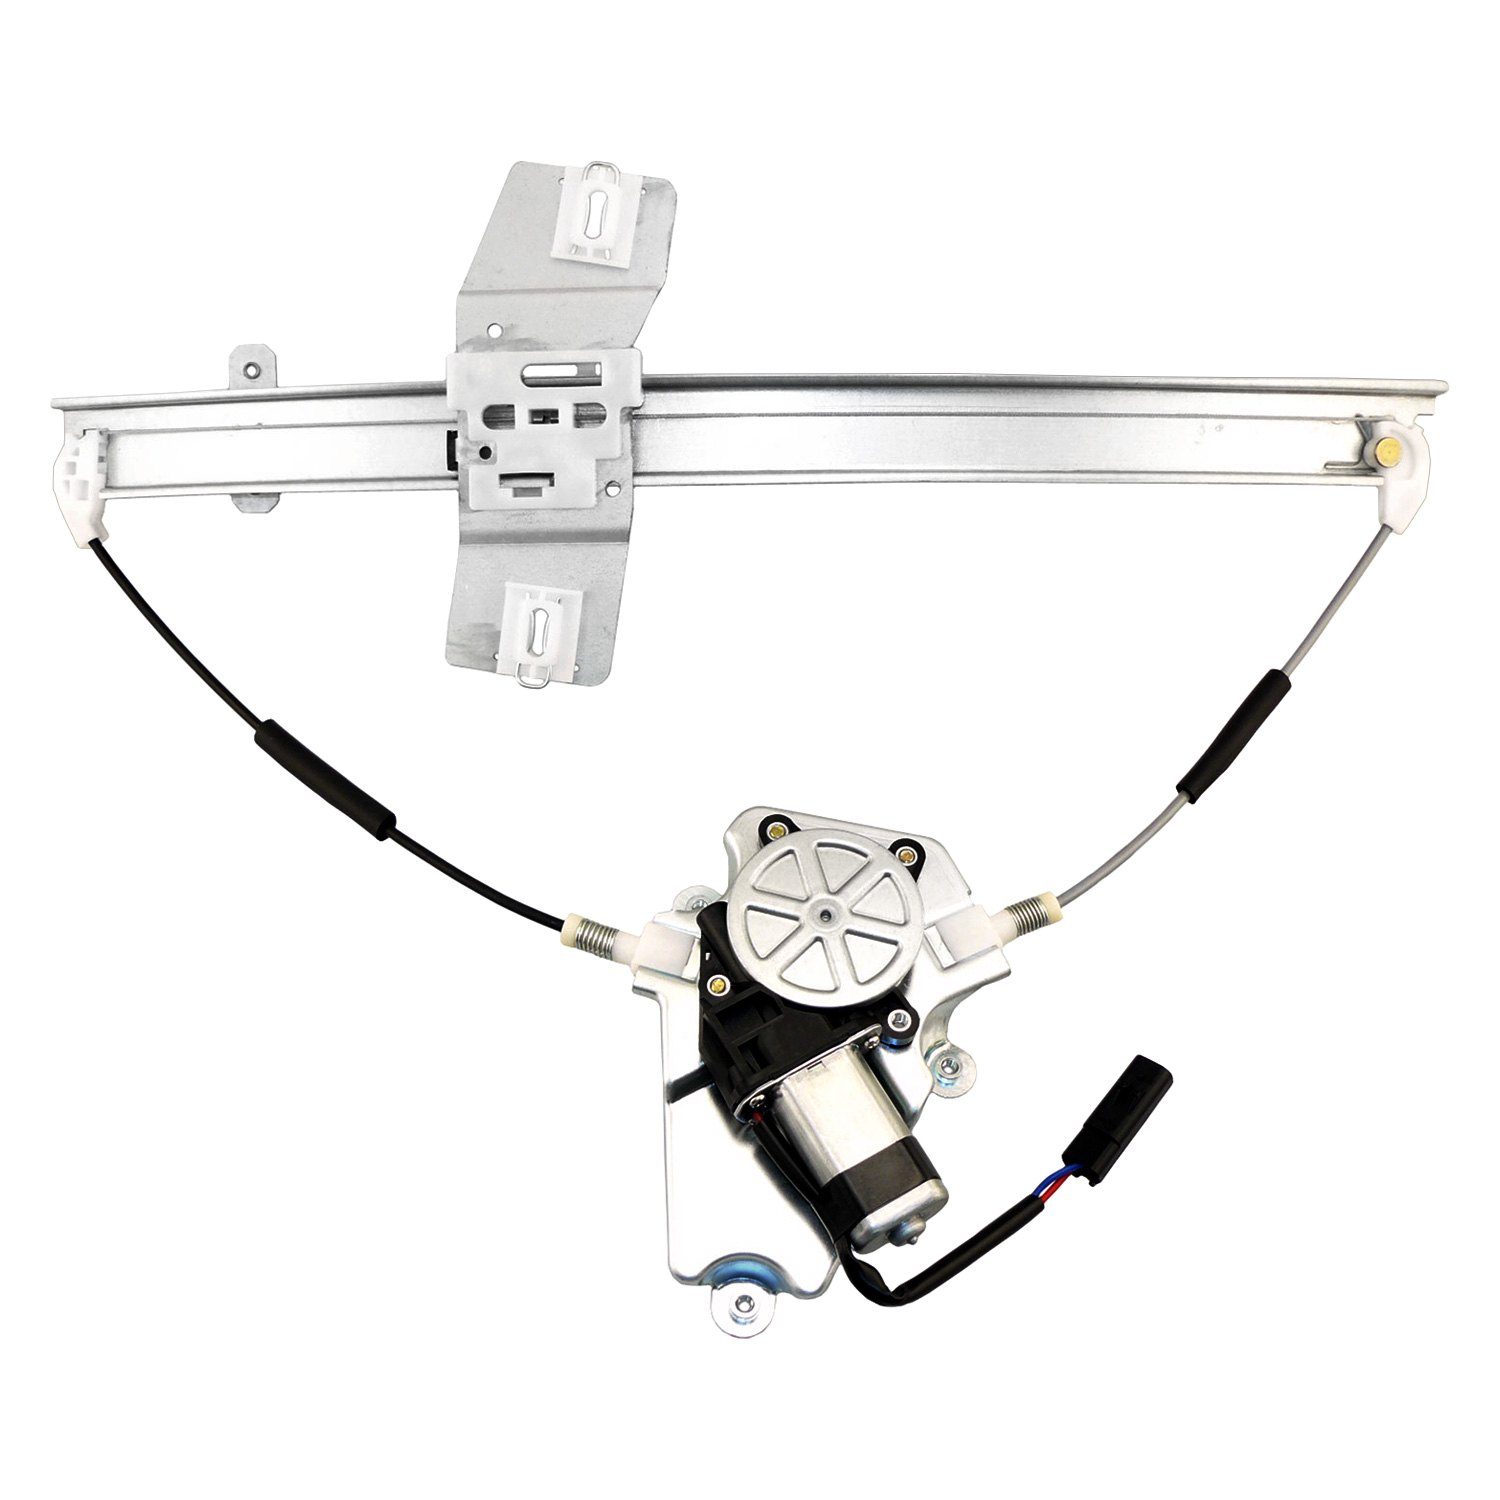 Acdelco jeep liberty 2002 professional power window for 2002 jeep liberty rear window regulator